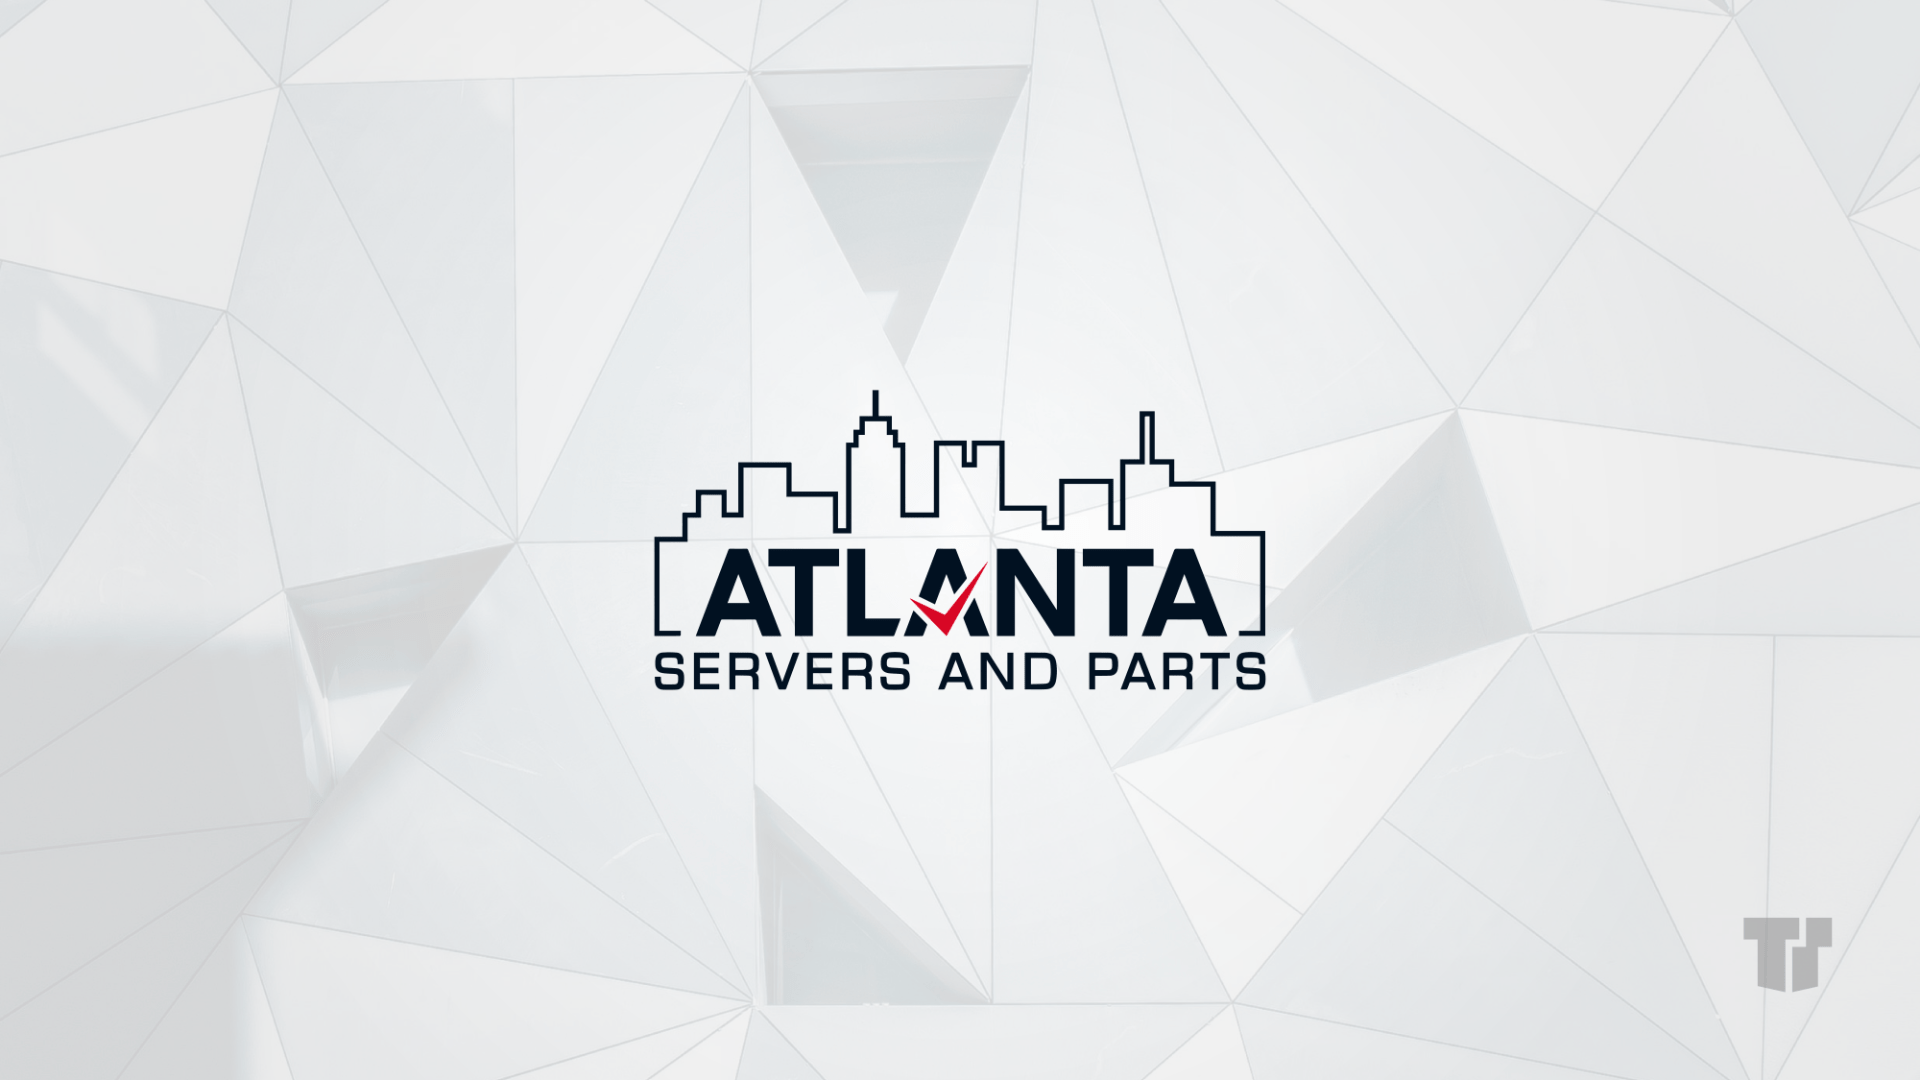 Atlanta Servers and Parts cover image